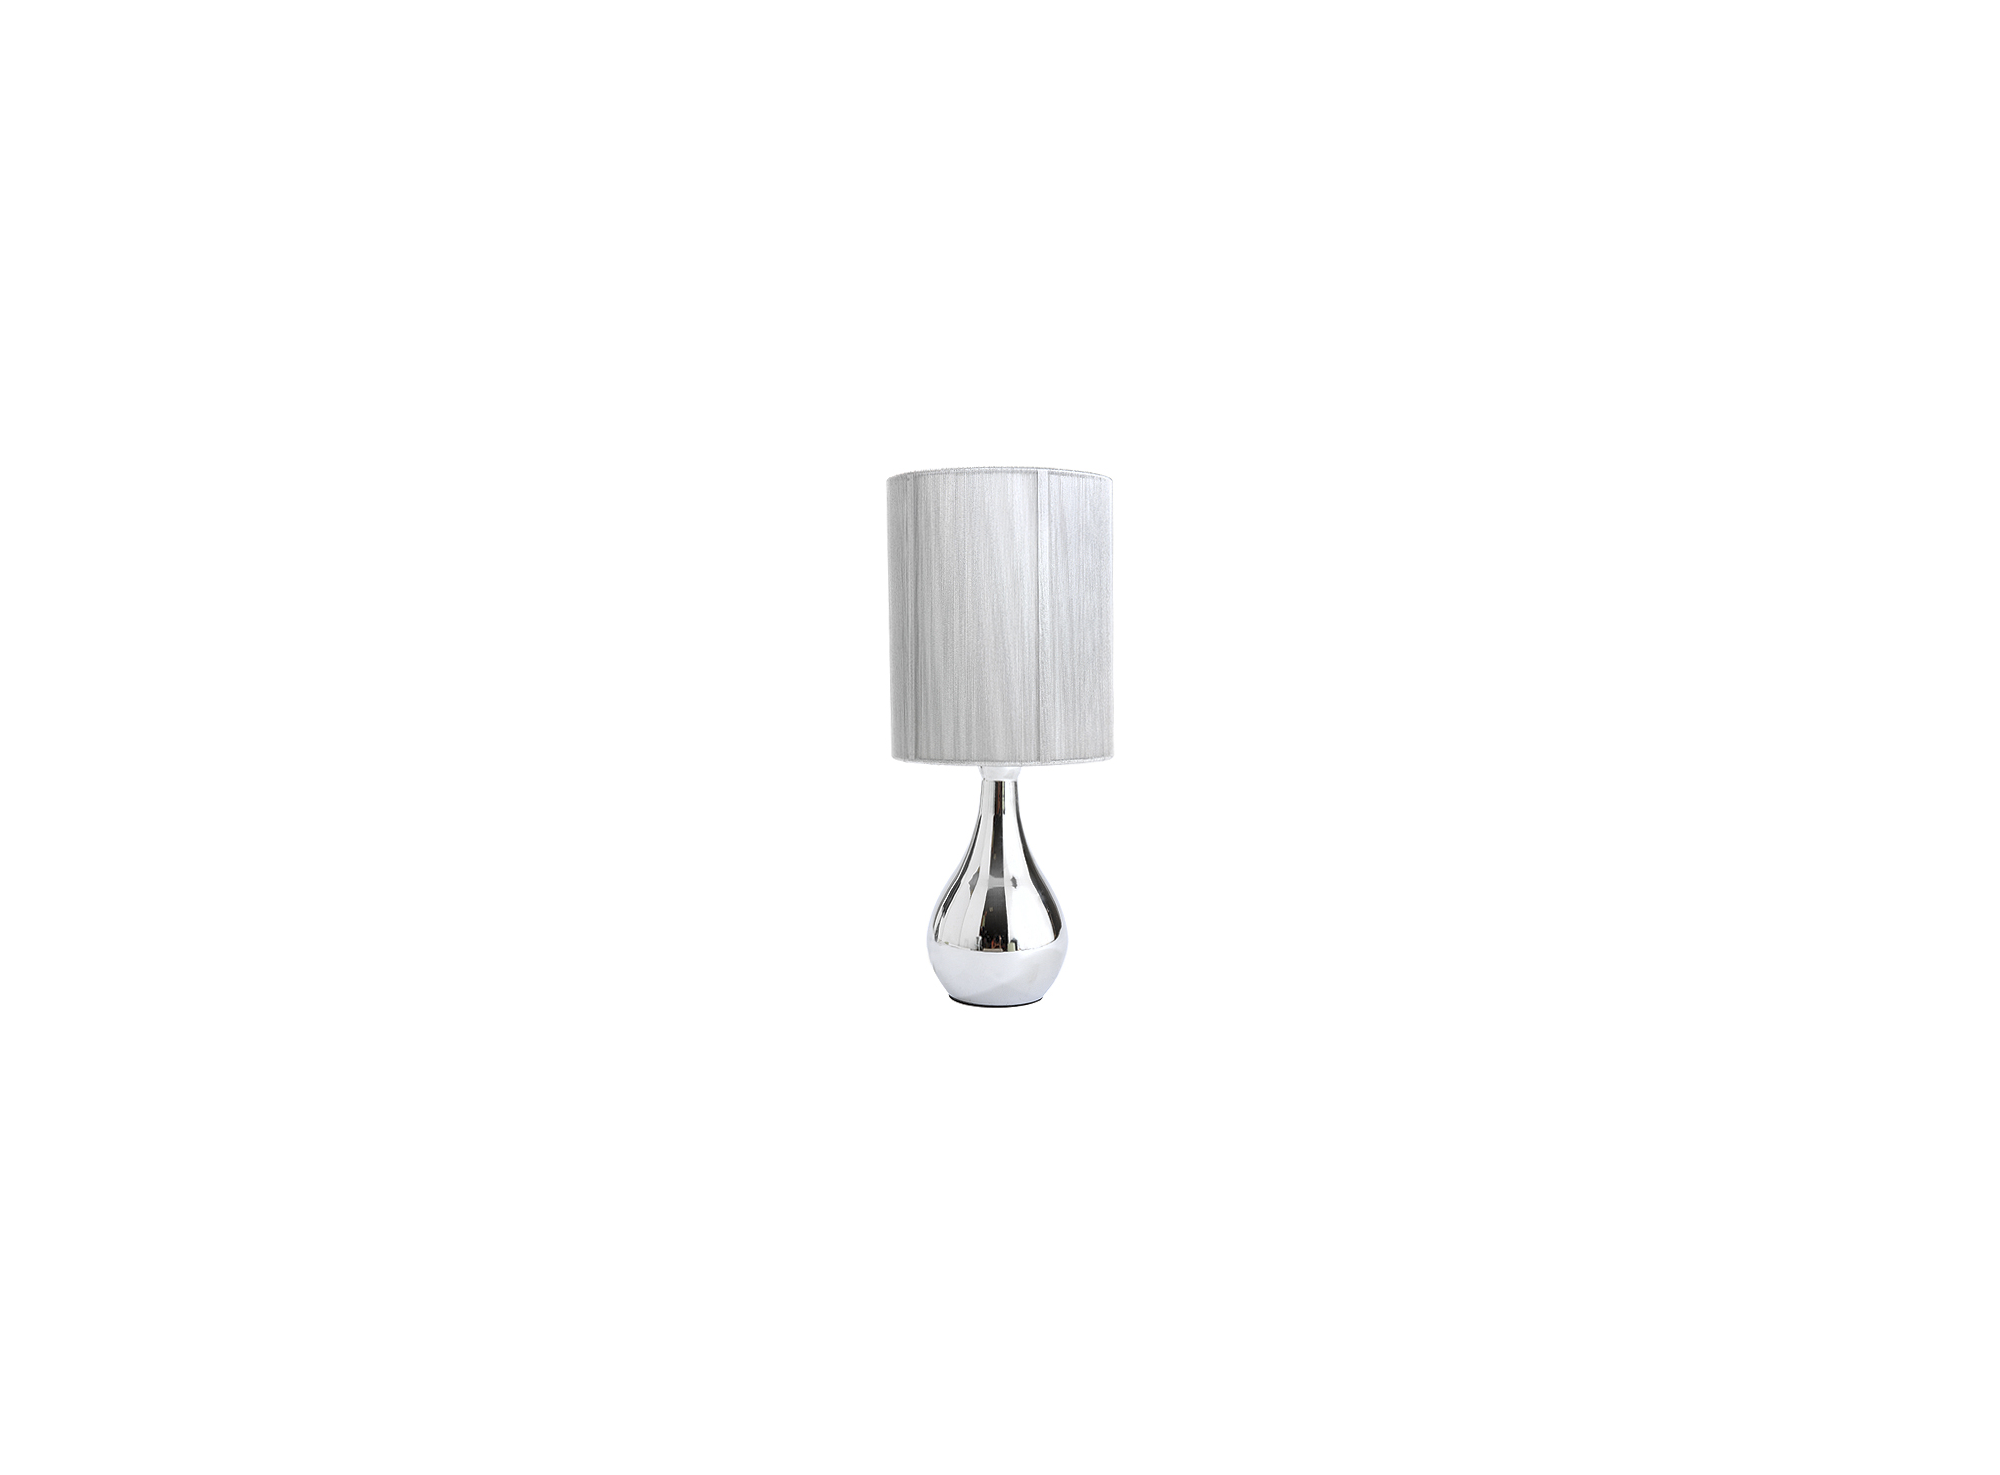 Lampe a poser h42cm sensitive (on/off) - pied en acier peint, chrome  ...